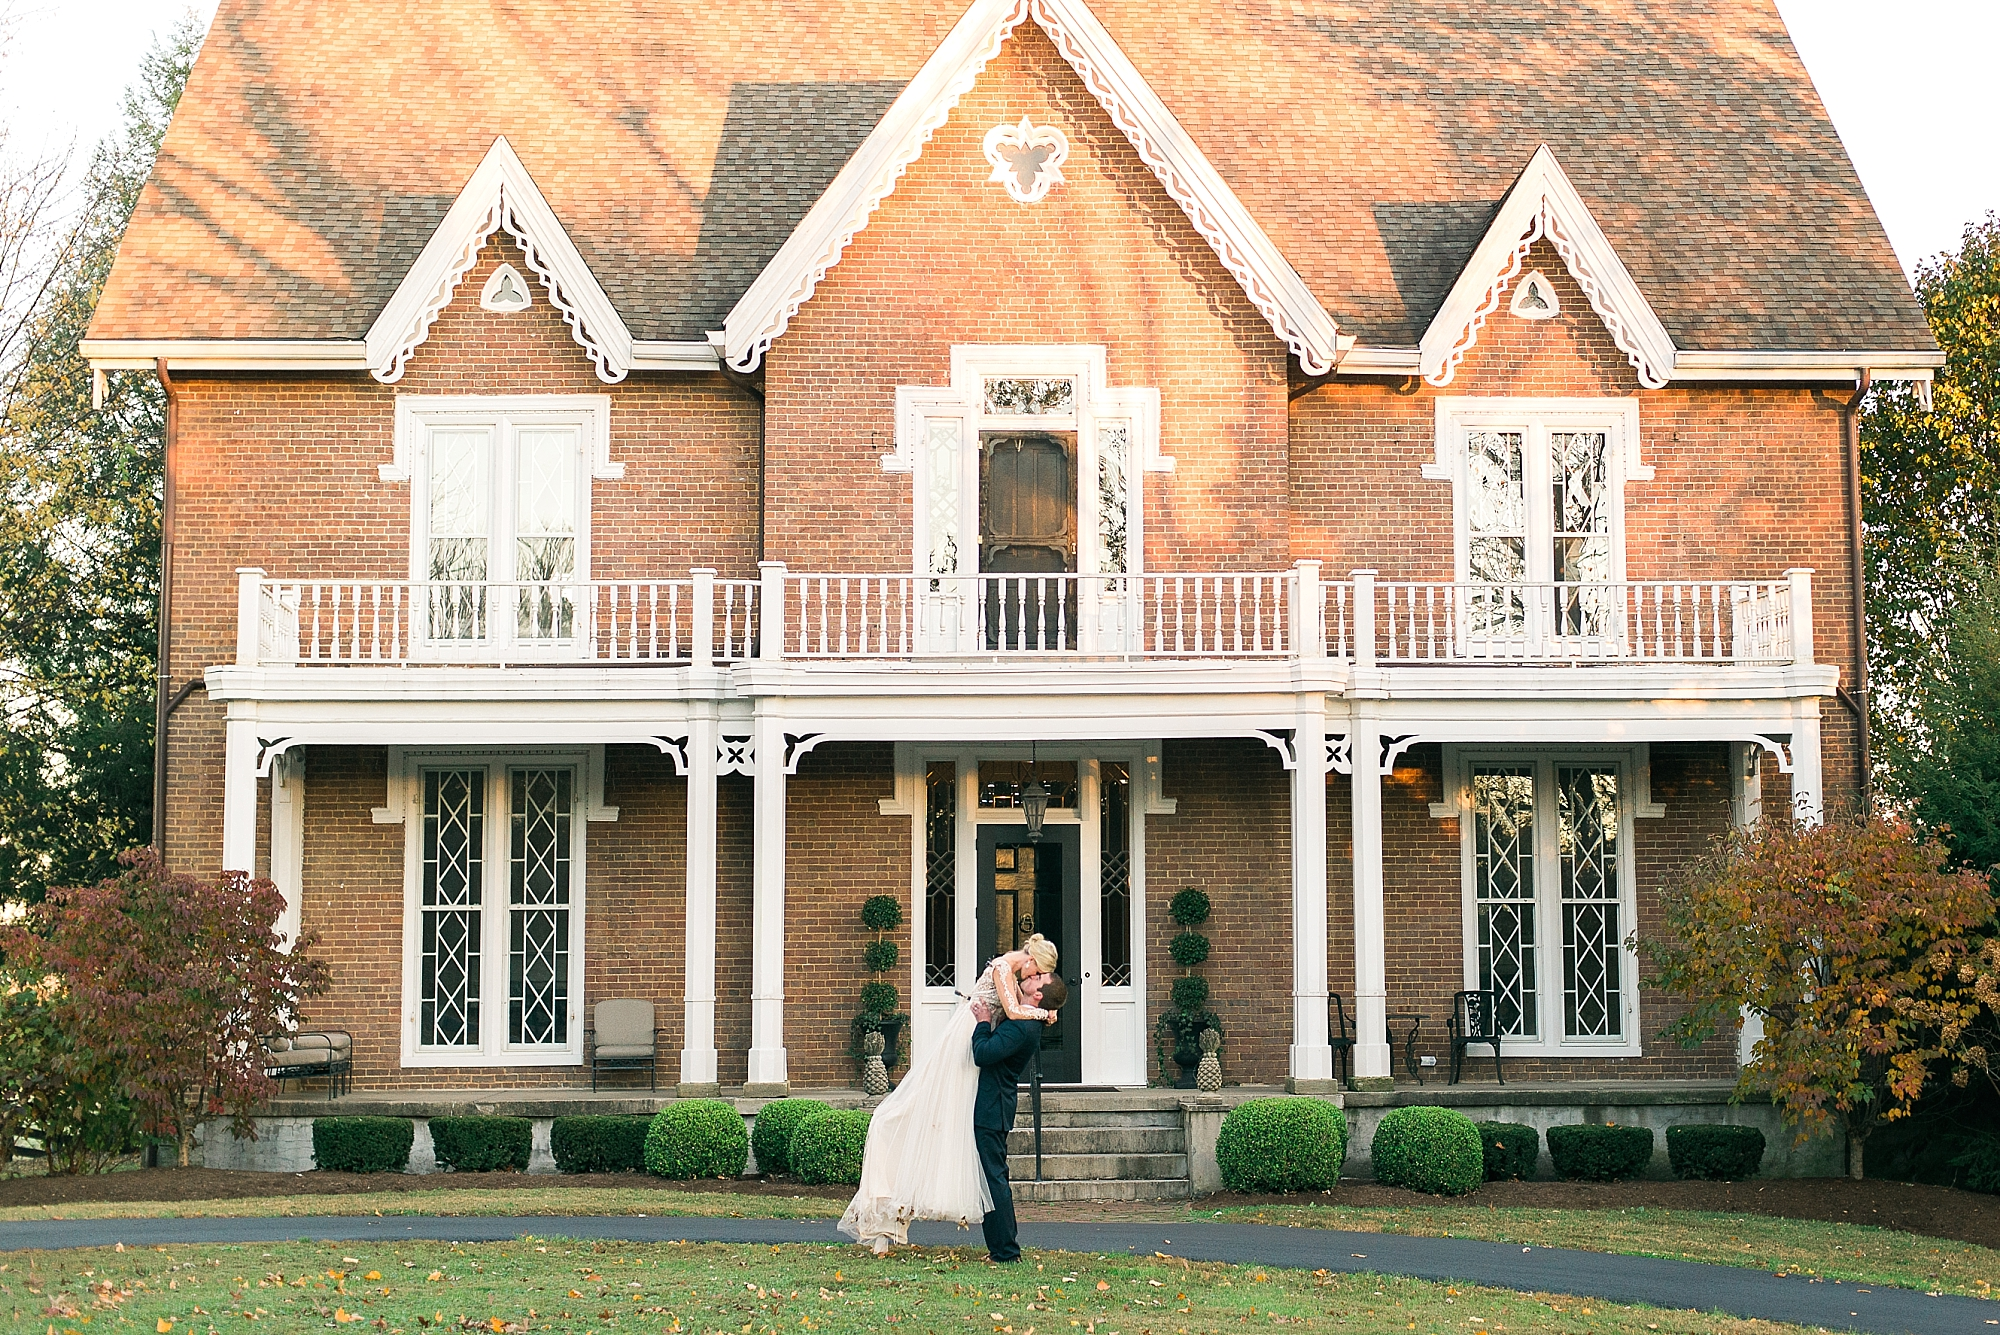 Warrenwood Manor is the perfect Southern wedding venue!